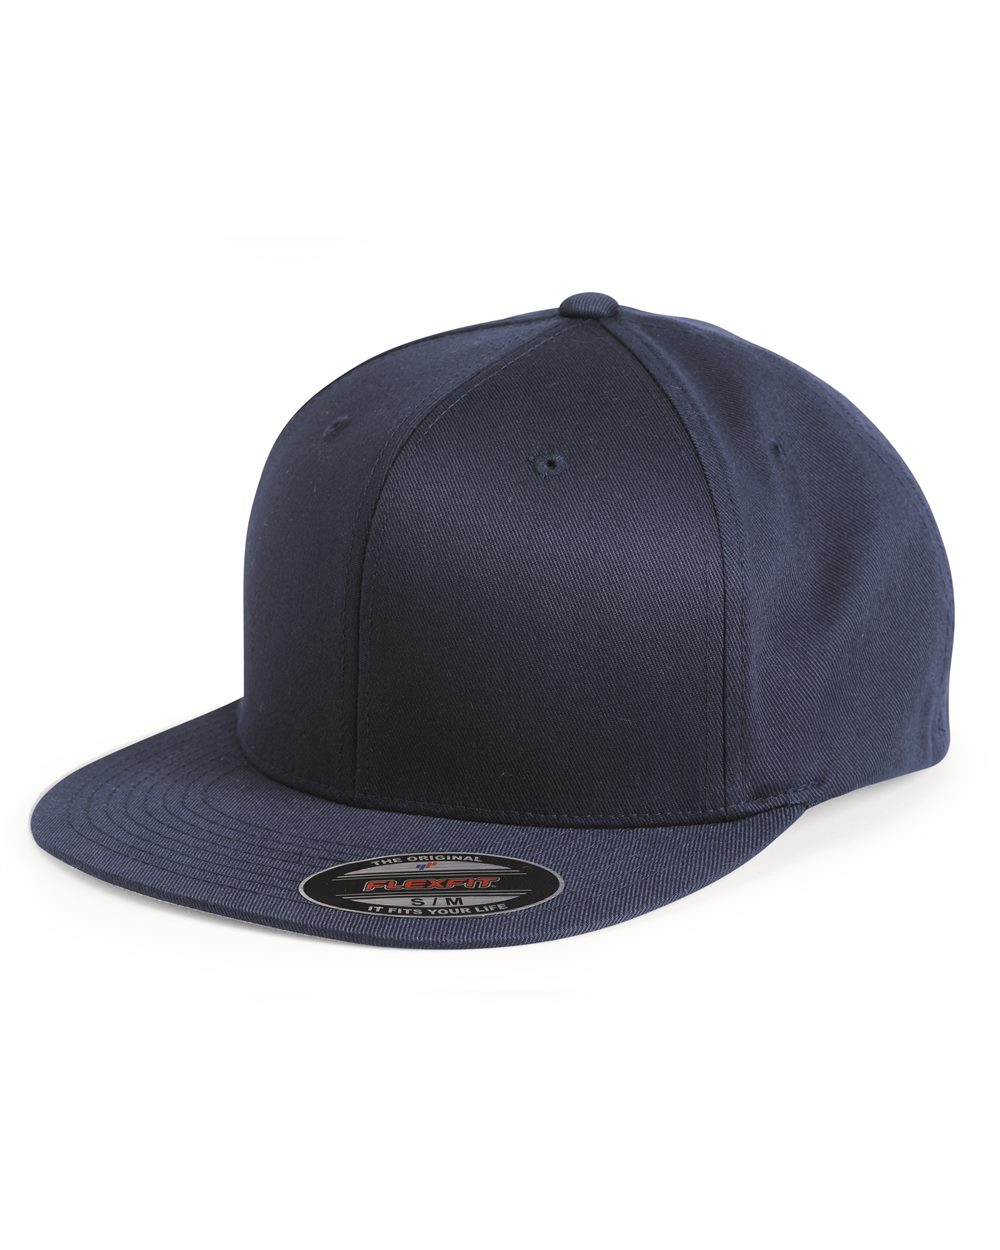 Flexfit 6297F - Pro-Baseball On Field Flat Bill Cap